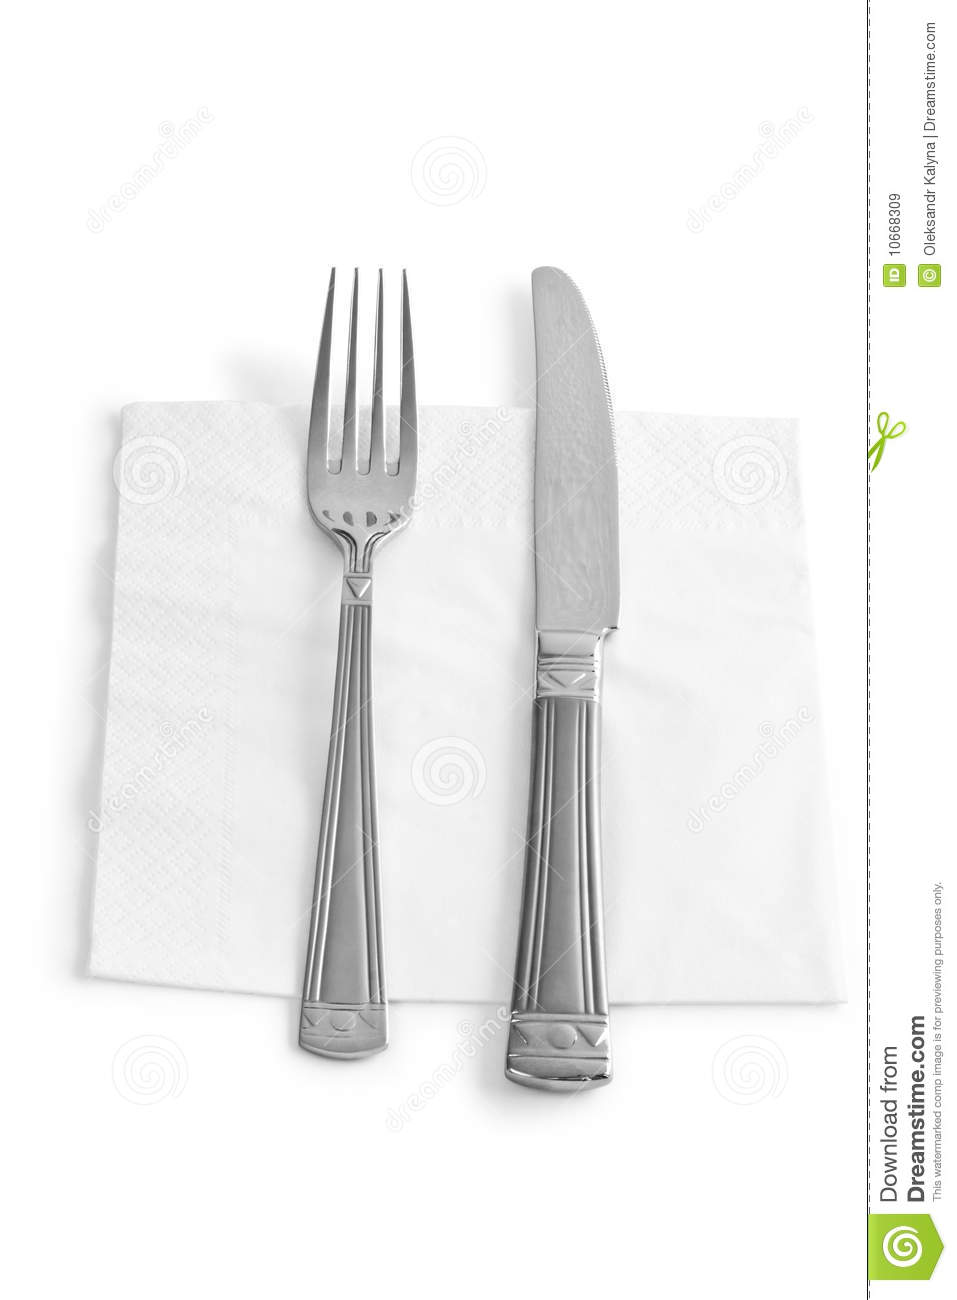 kitchen forks and knives two kitchen utensils fork and knife isolated royalty free stock images image 10668309 2782